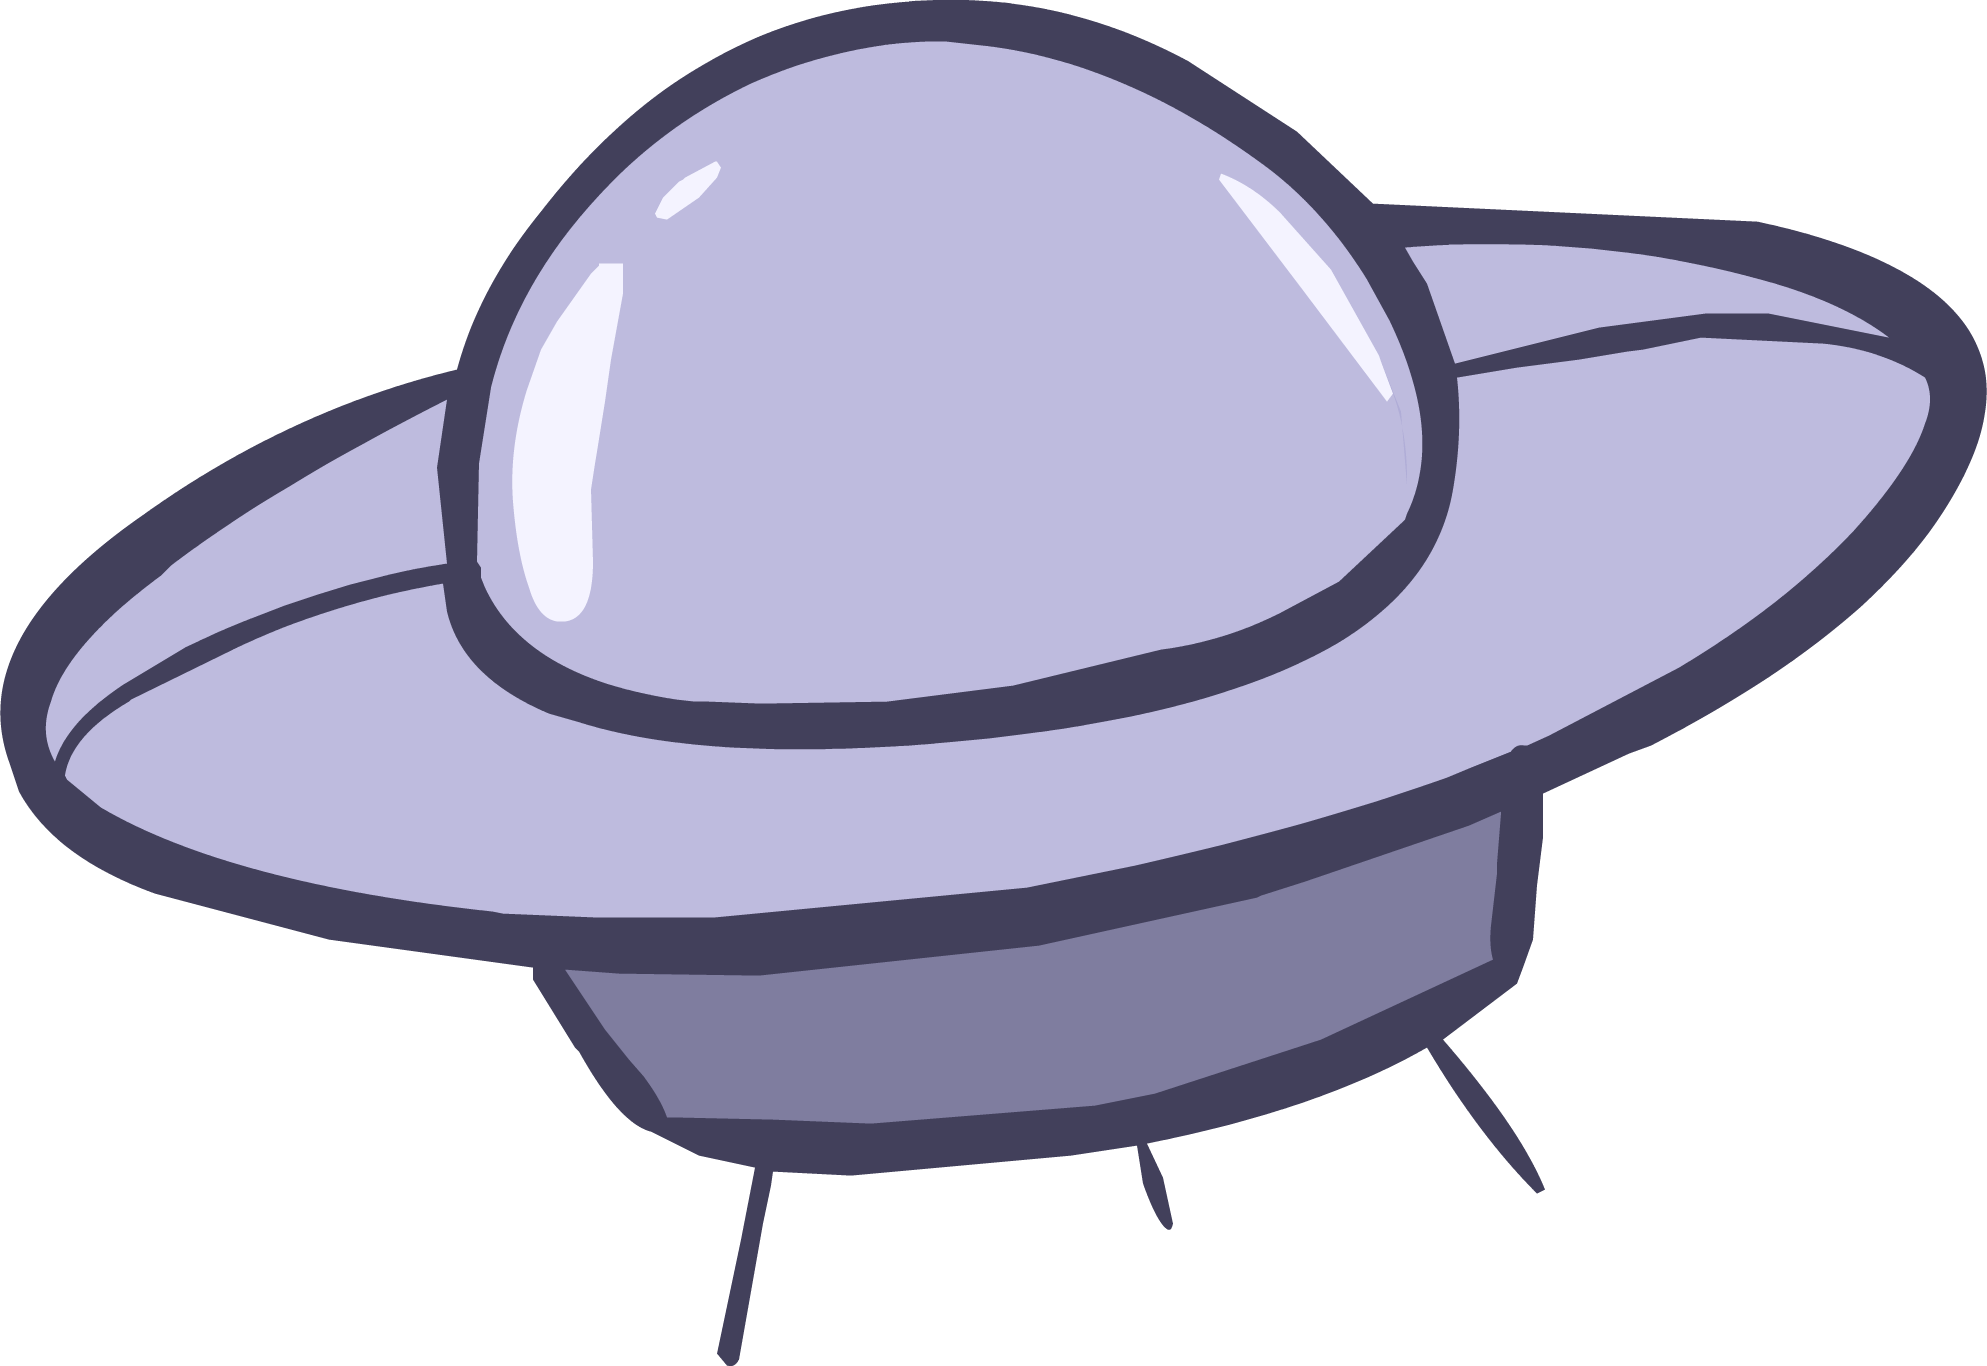 Ufo icon png. Image toy club penguin